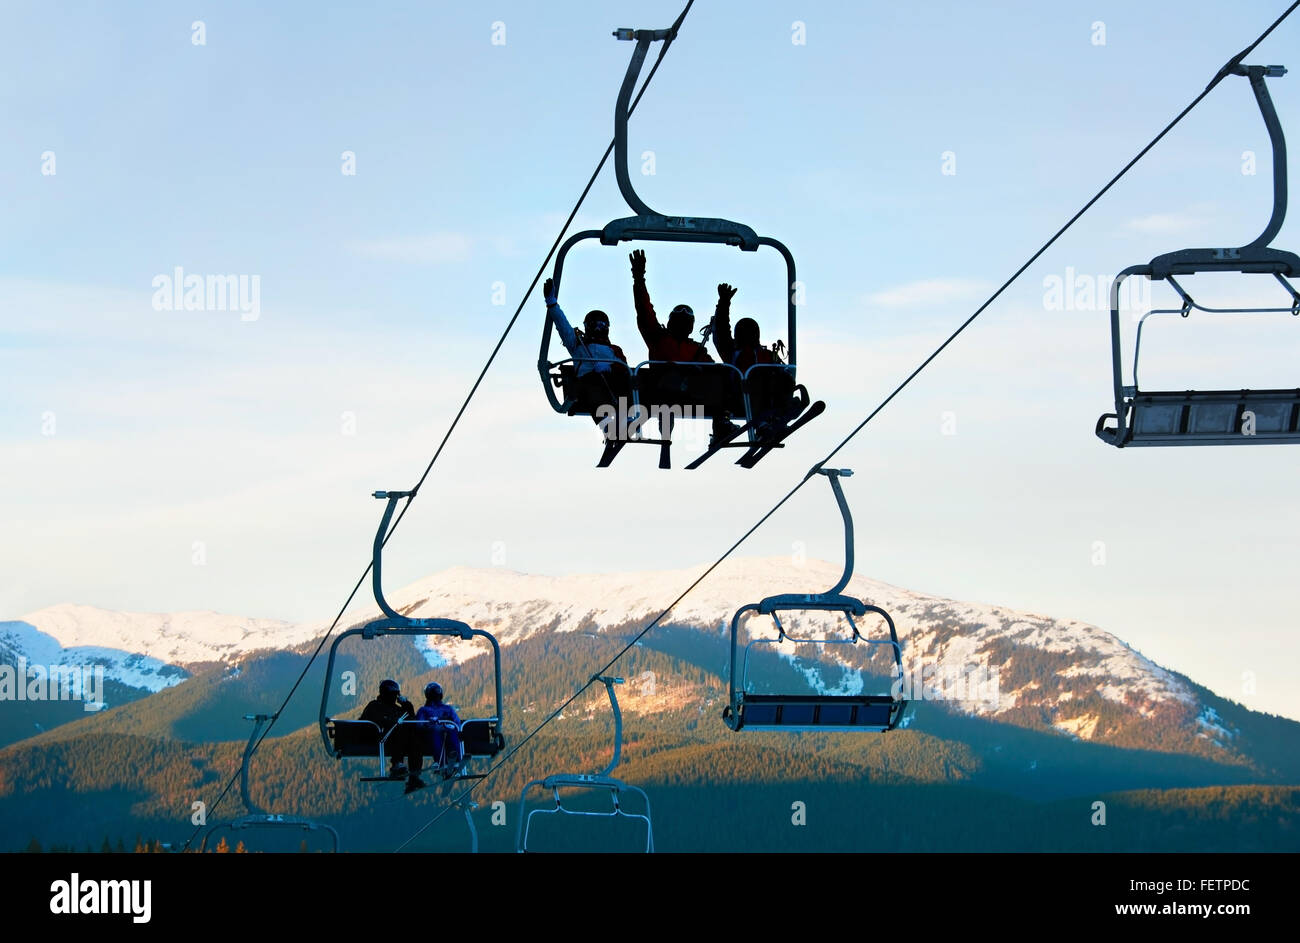 Silhouette of a group of people on a cableway at ski resort. - Stock Image